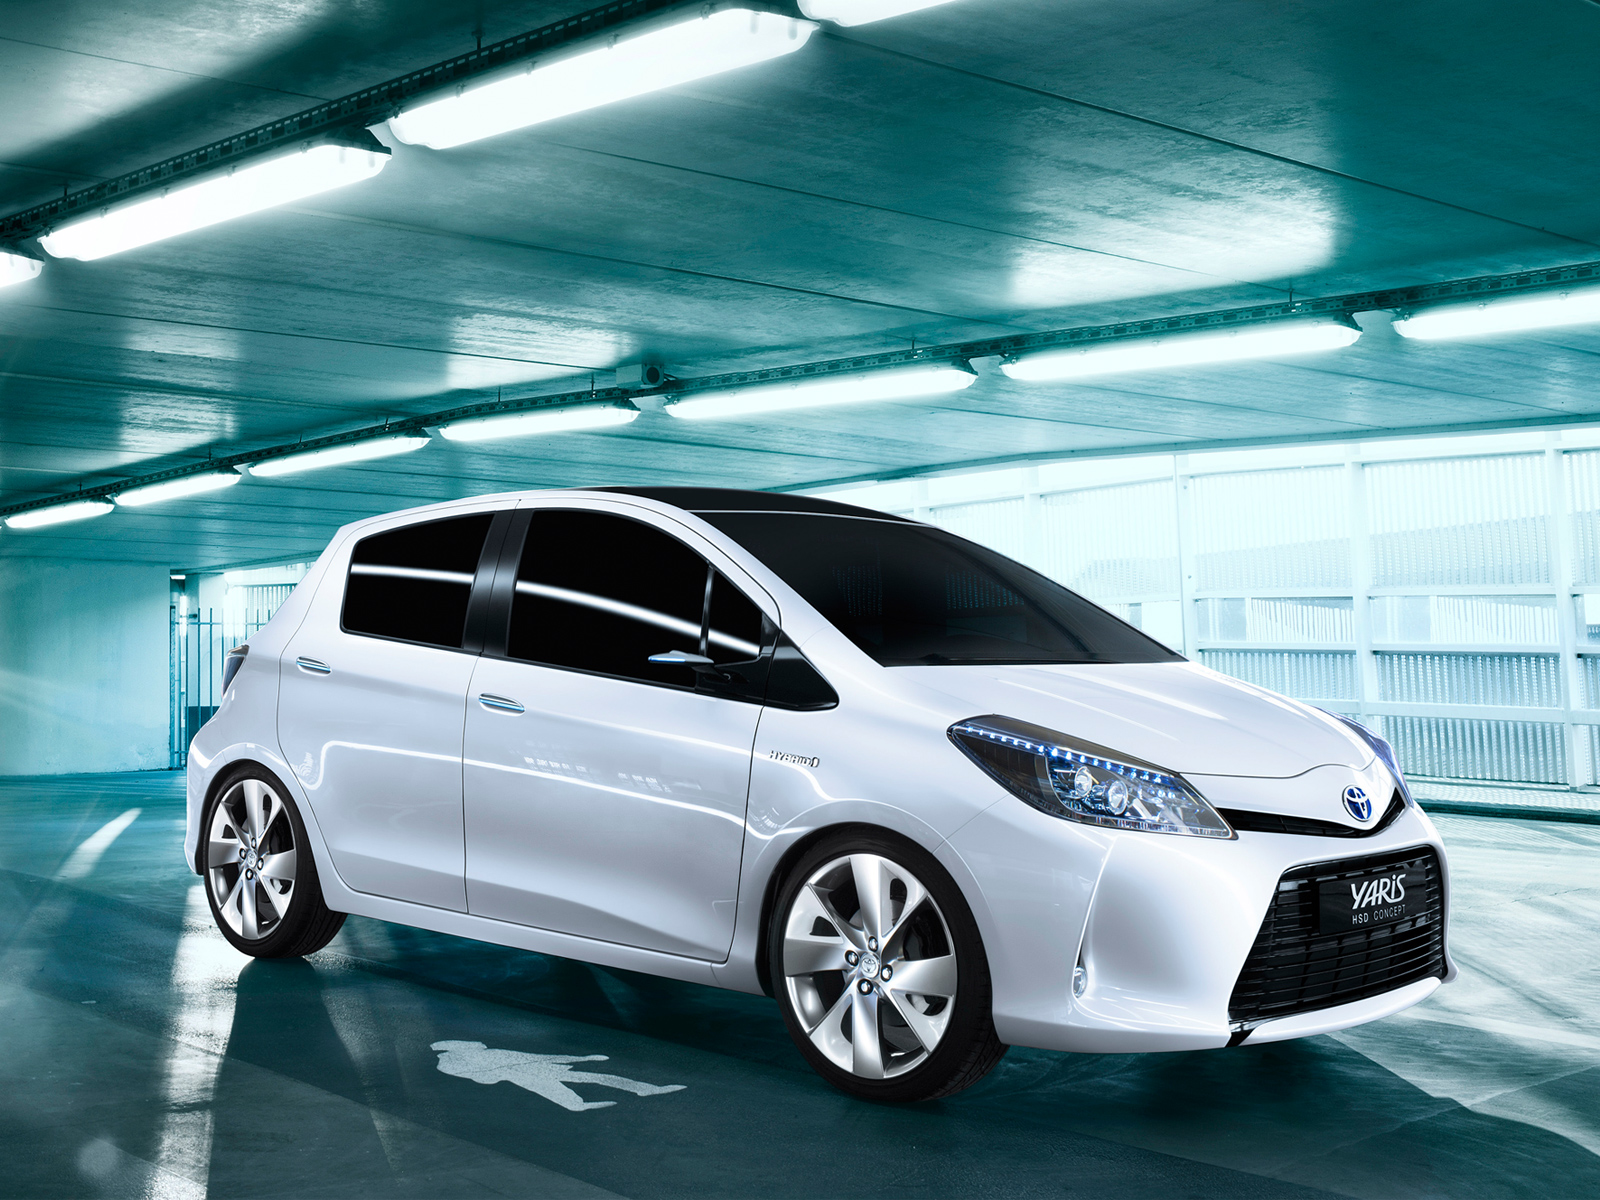 Toyota Yaris Hsd Concept 2011 Exterior Wallpapers Download